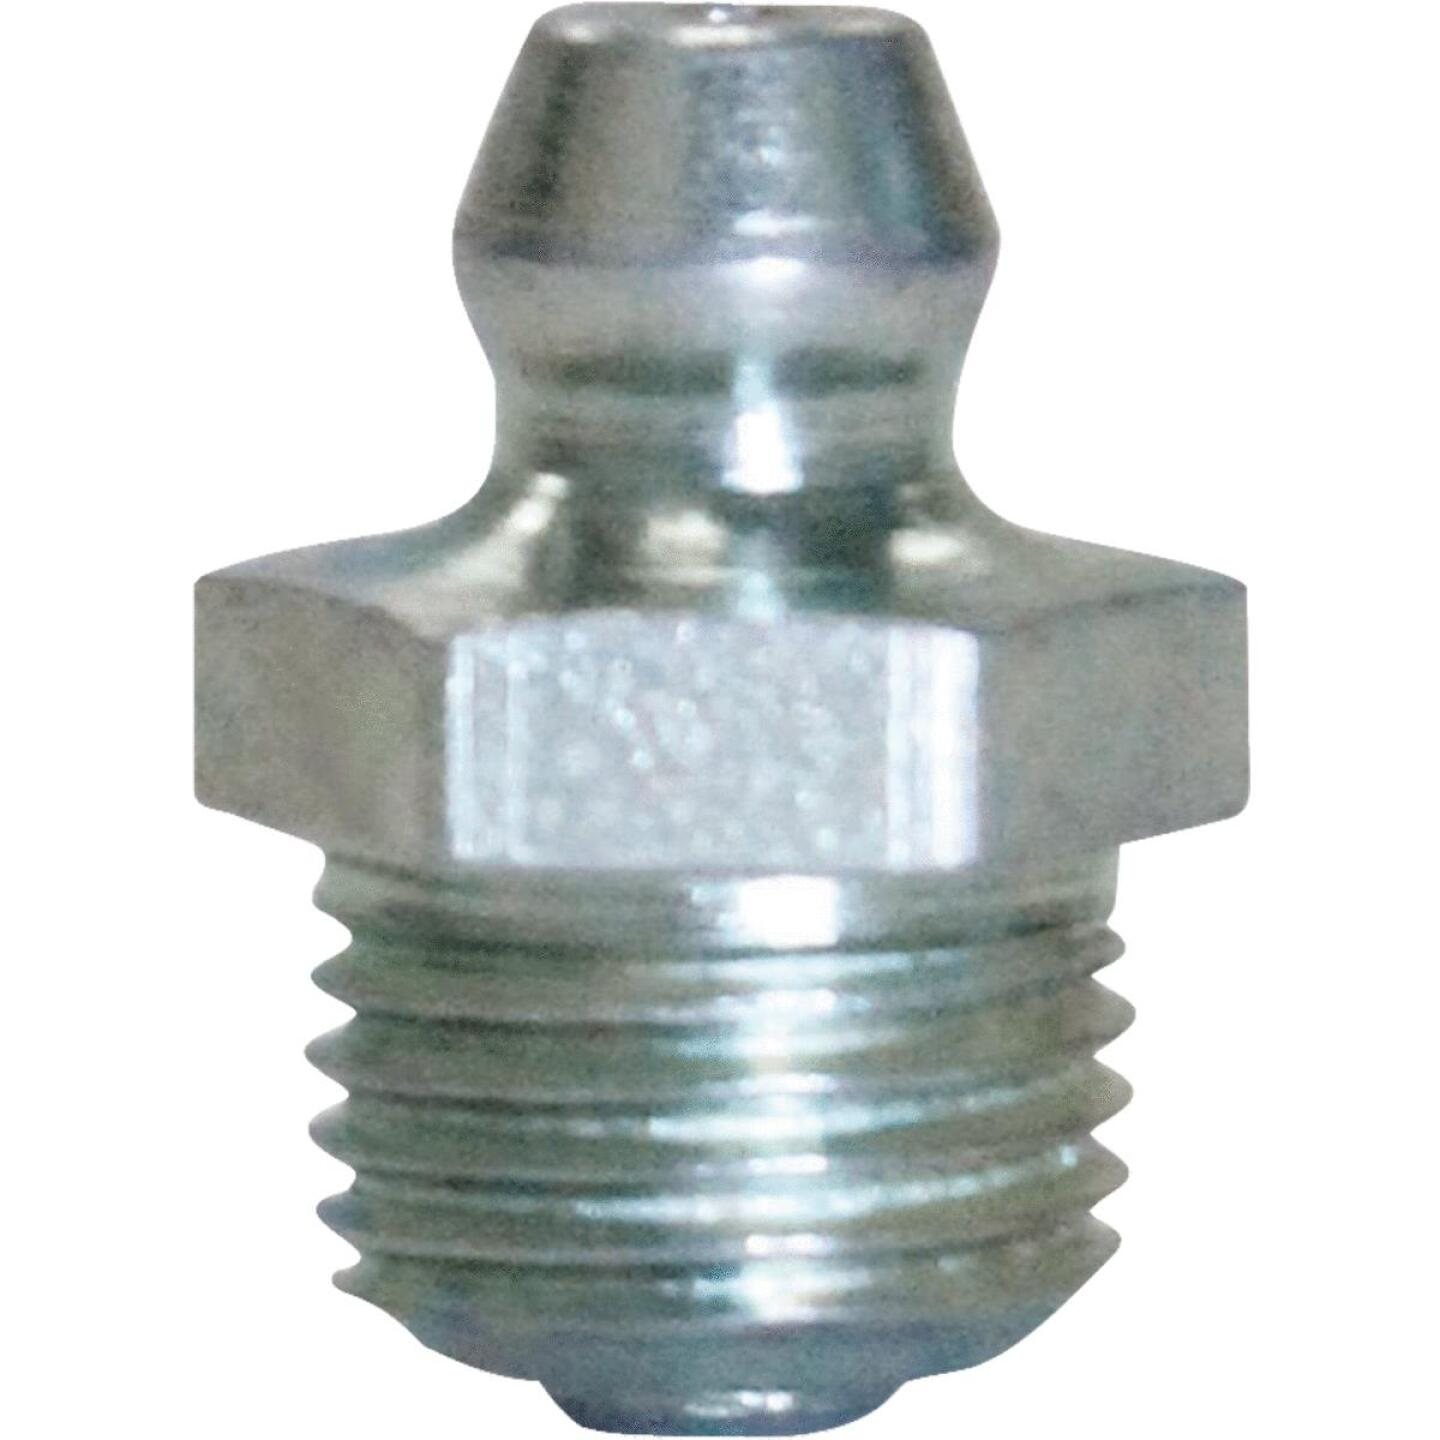 "Plews Lubrimatic Straight, Short 1/8"" Grease Fitting Image 1"